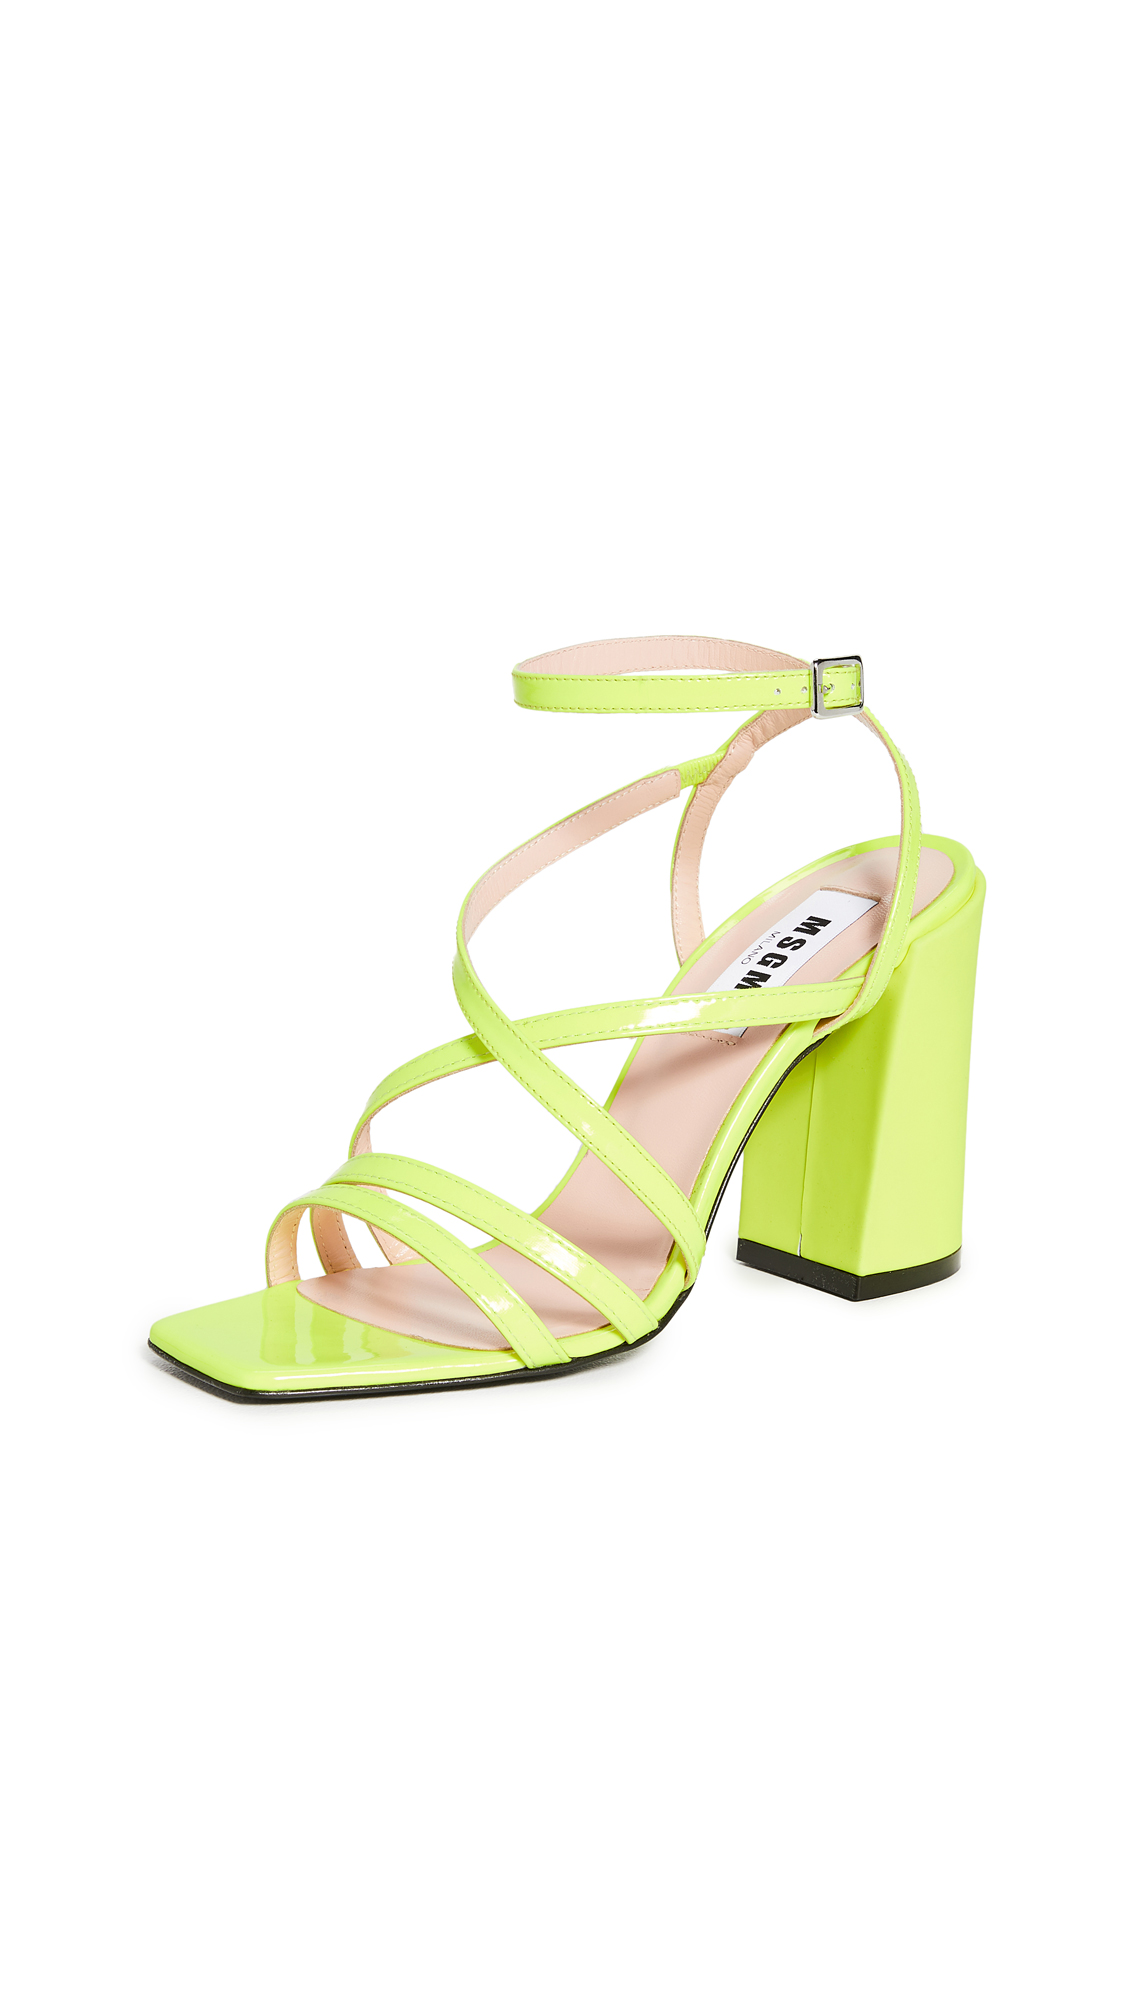 MSGM Strappy Sandals – 50% Off Sale